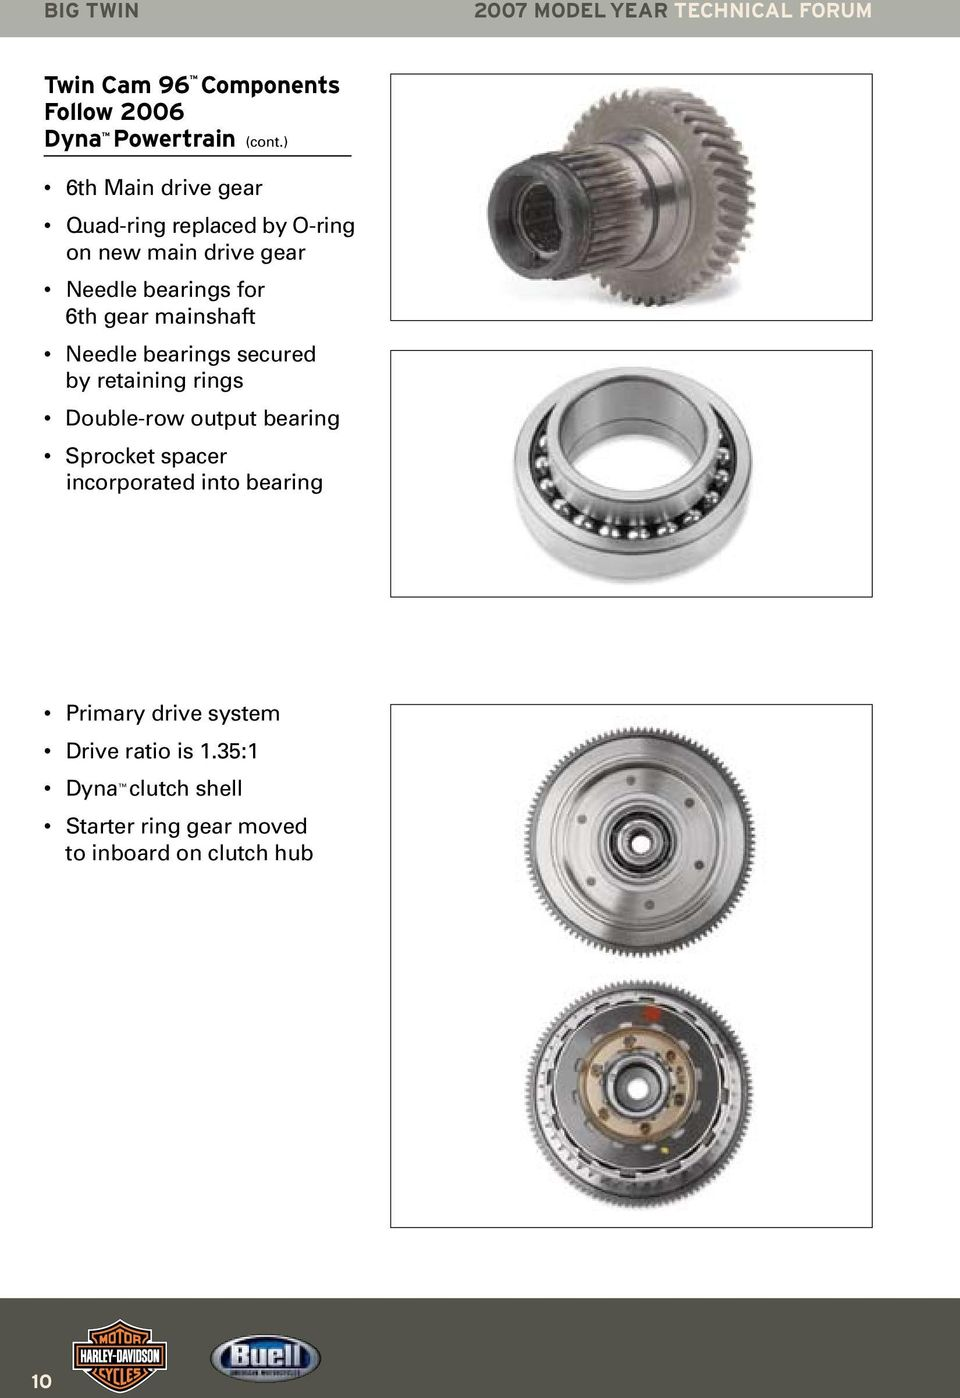 Harley Davidson University Tech N Ical F Or U M 2007 Model Year Pdf 07 Flhtcu Wiring Diagrams Color Mainshaft Needle Bearings Secured By Retaining Rings Double Row Output Bearing Sprocket Spacer Incorporated